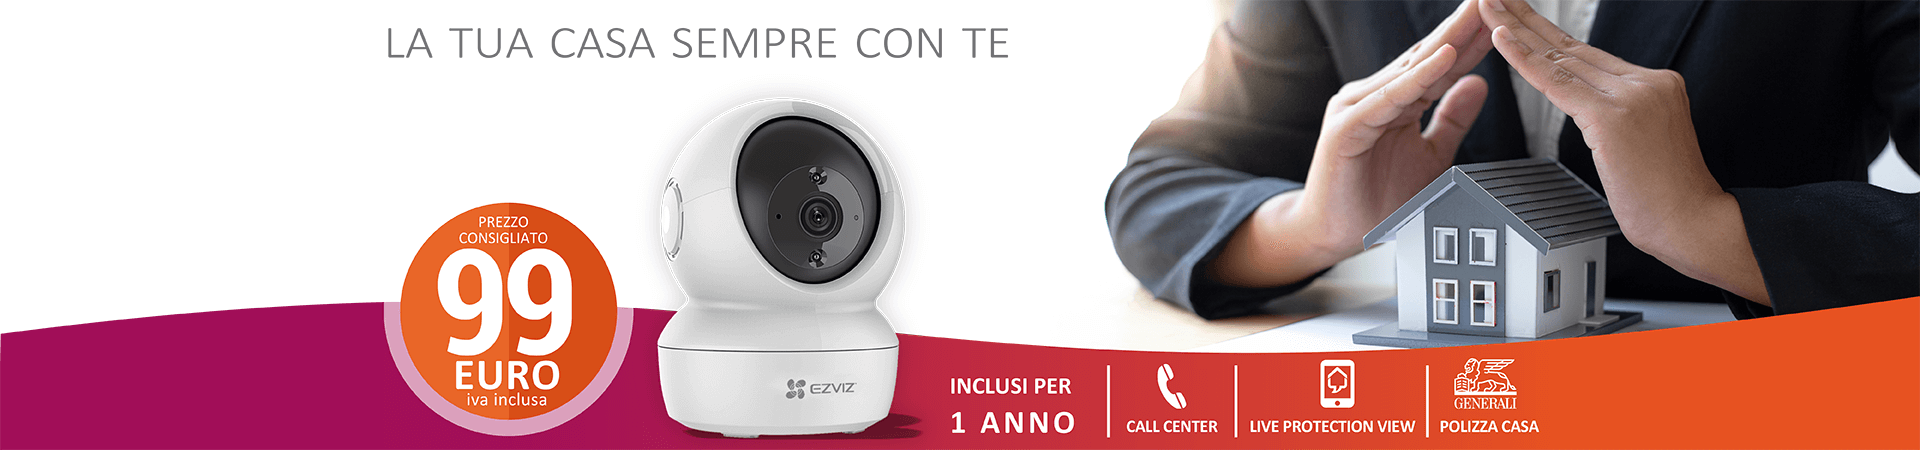 offerta live protection 2021